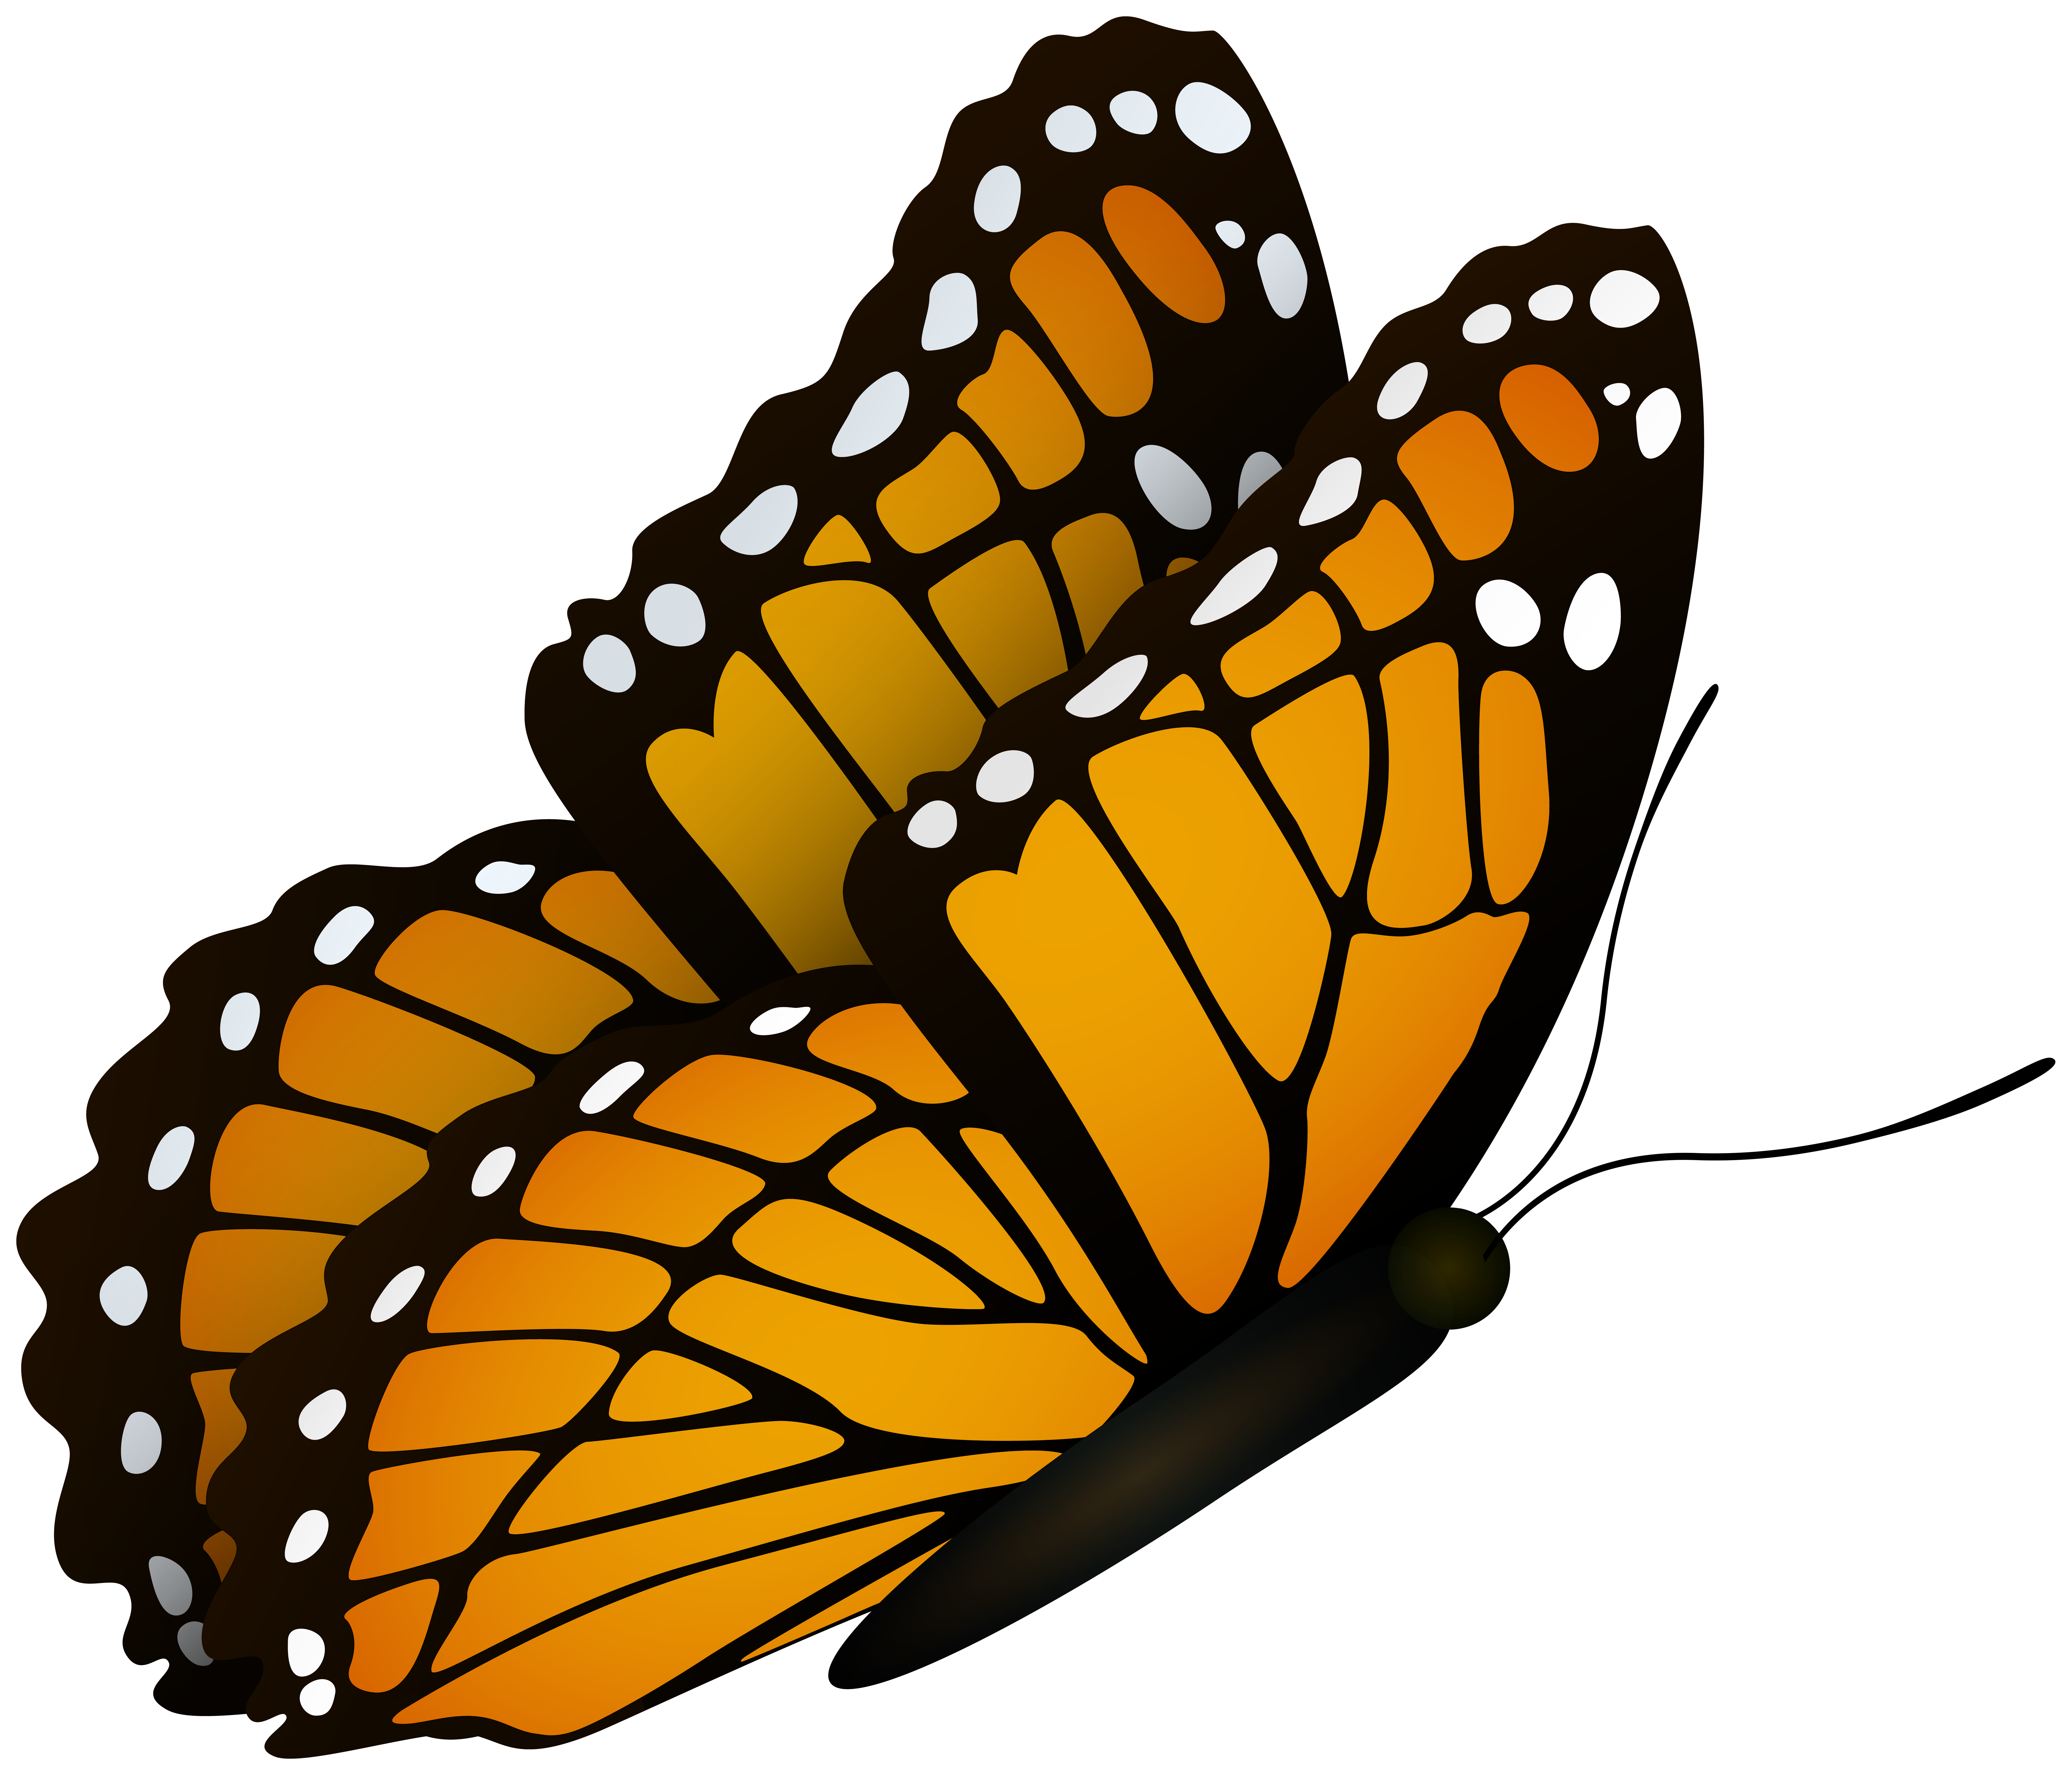 Flying Butterfly Clipart Image.